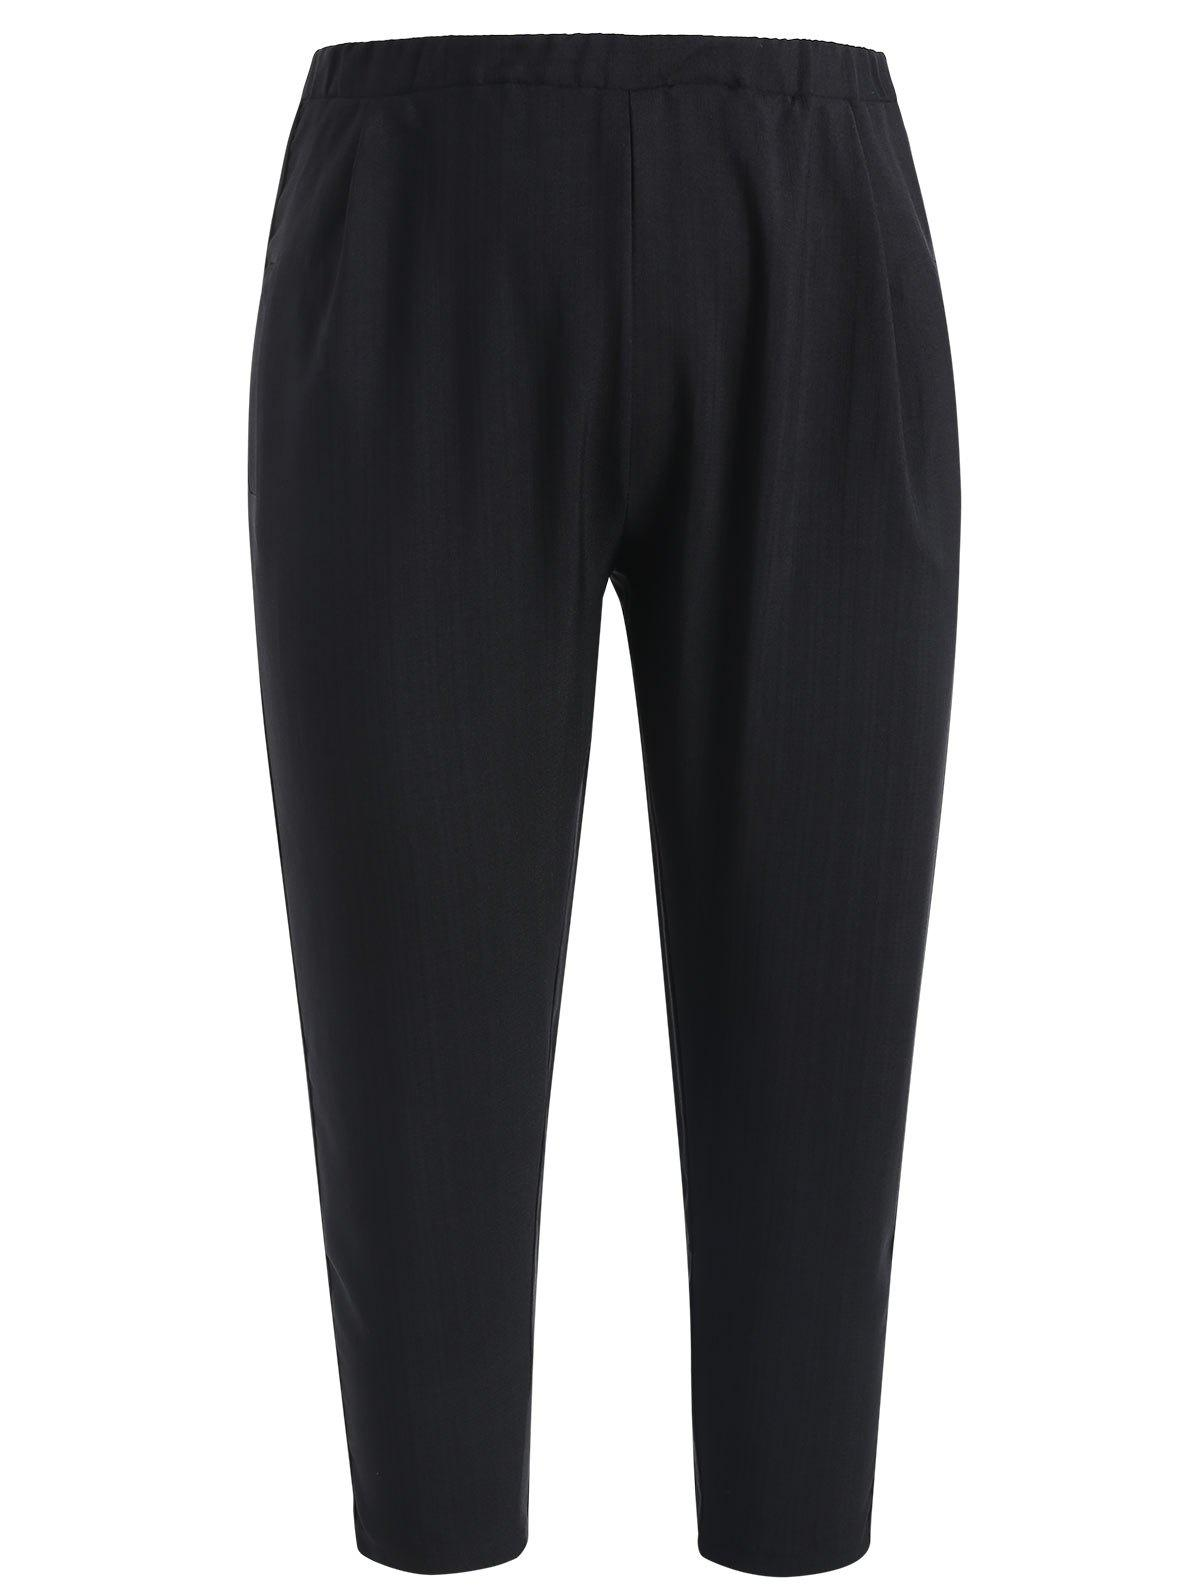 Chic Plus Size High Waisted Pants with Ribbons